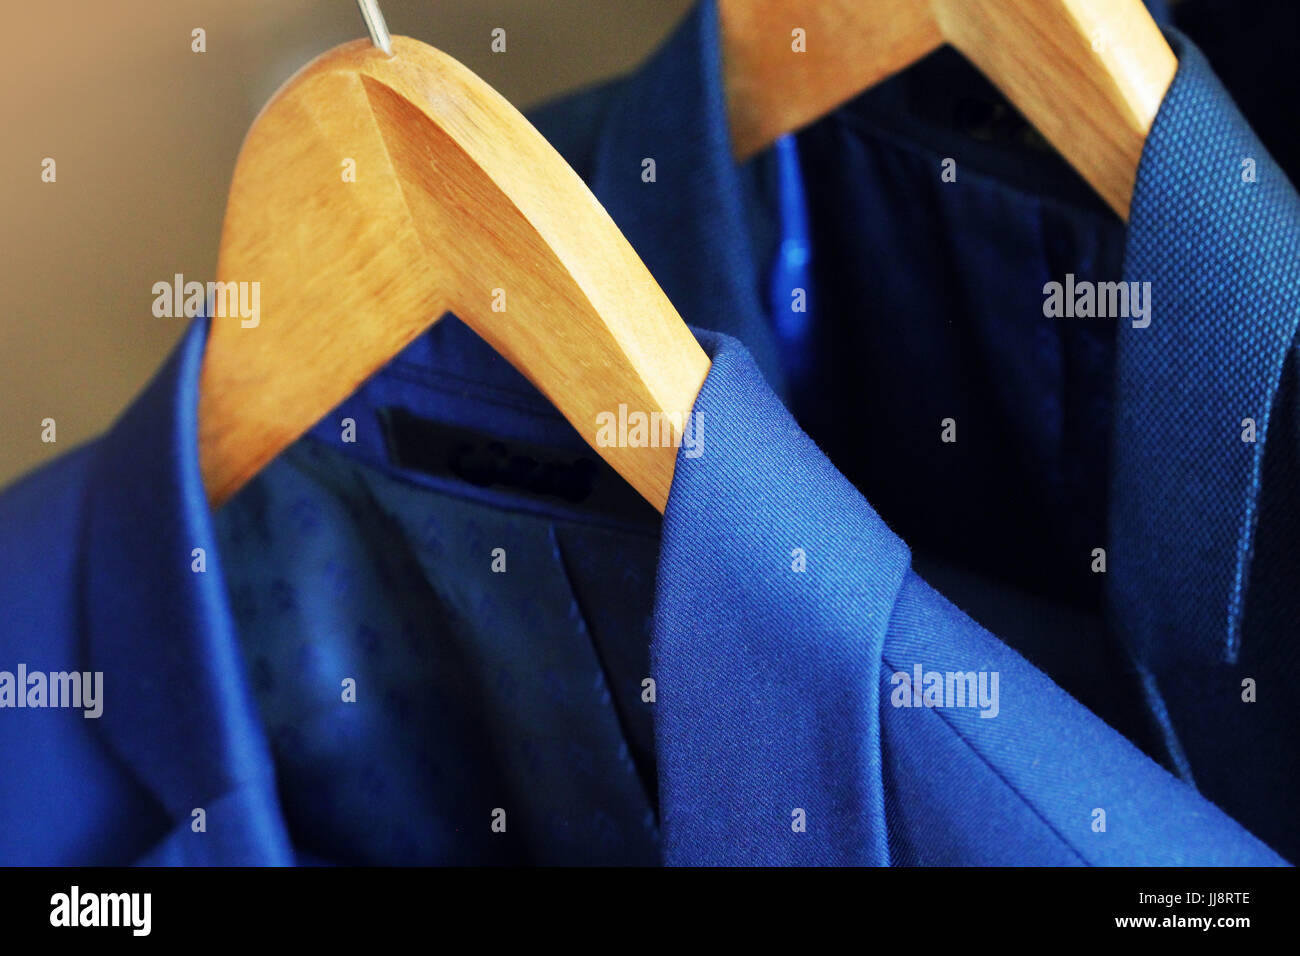 Row of men's suits hanging in closet - Stock Image